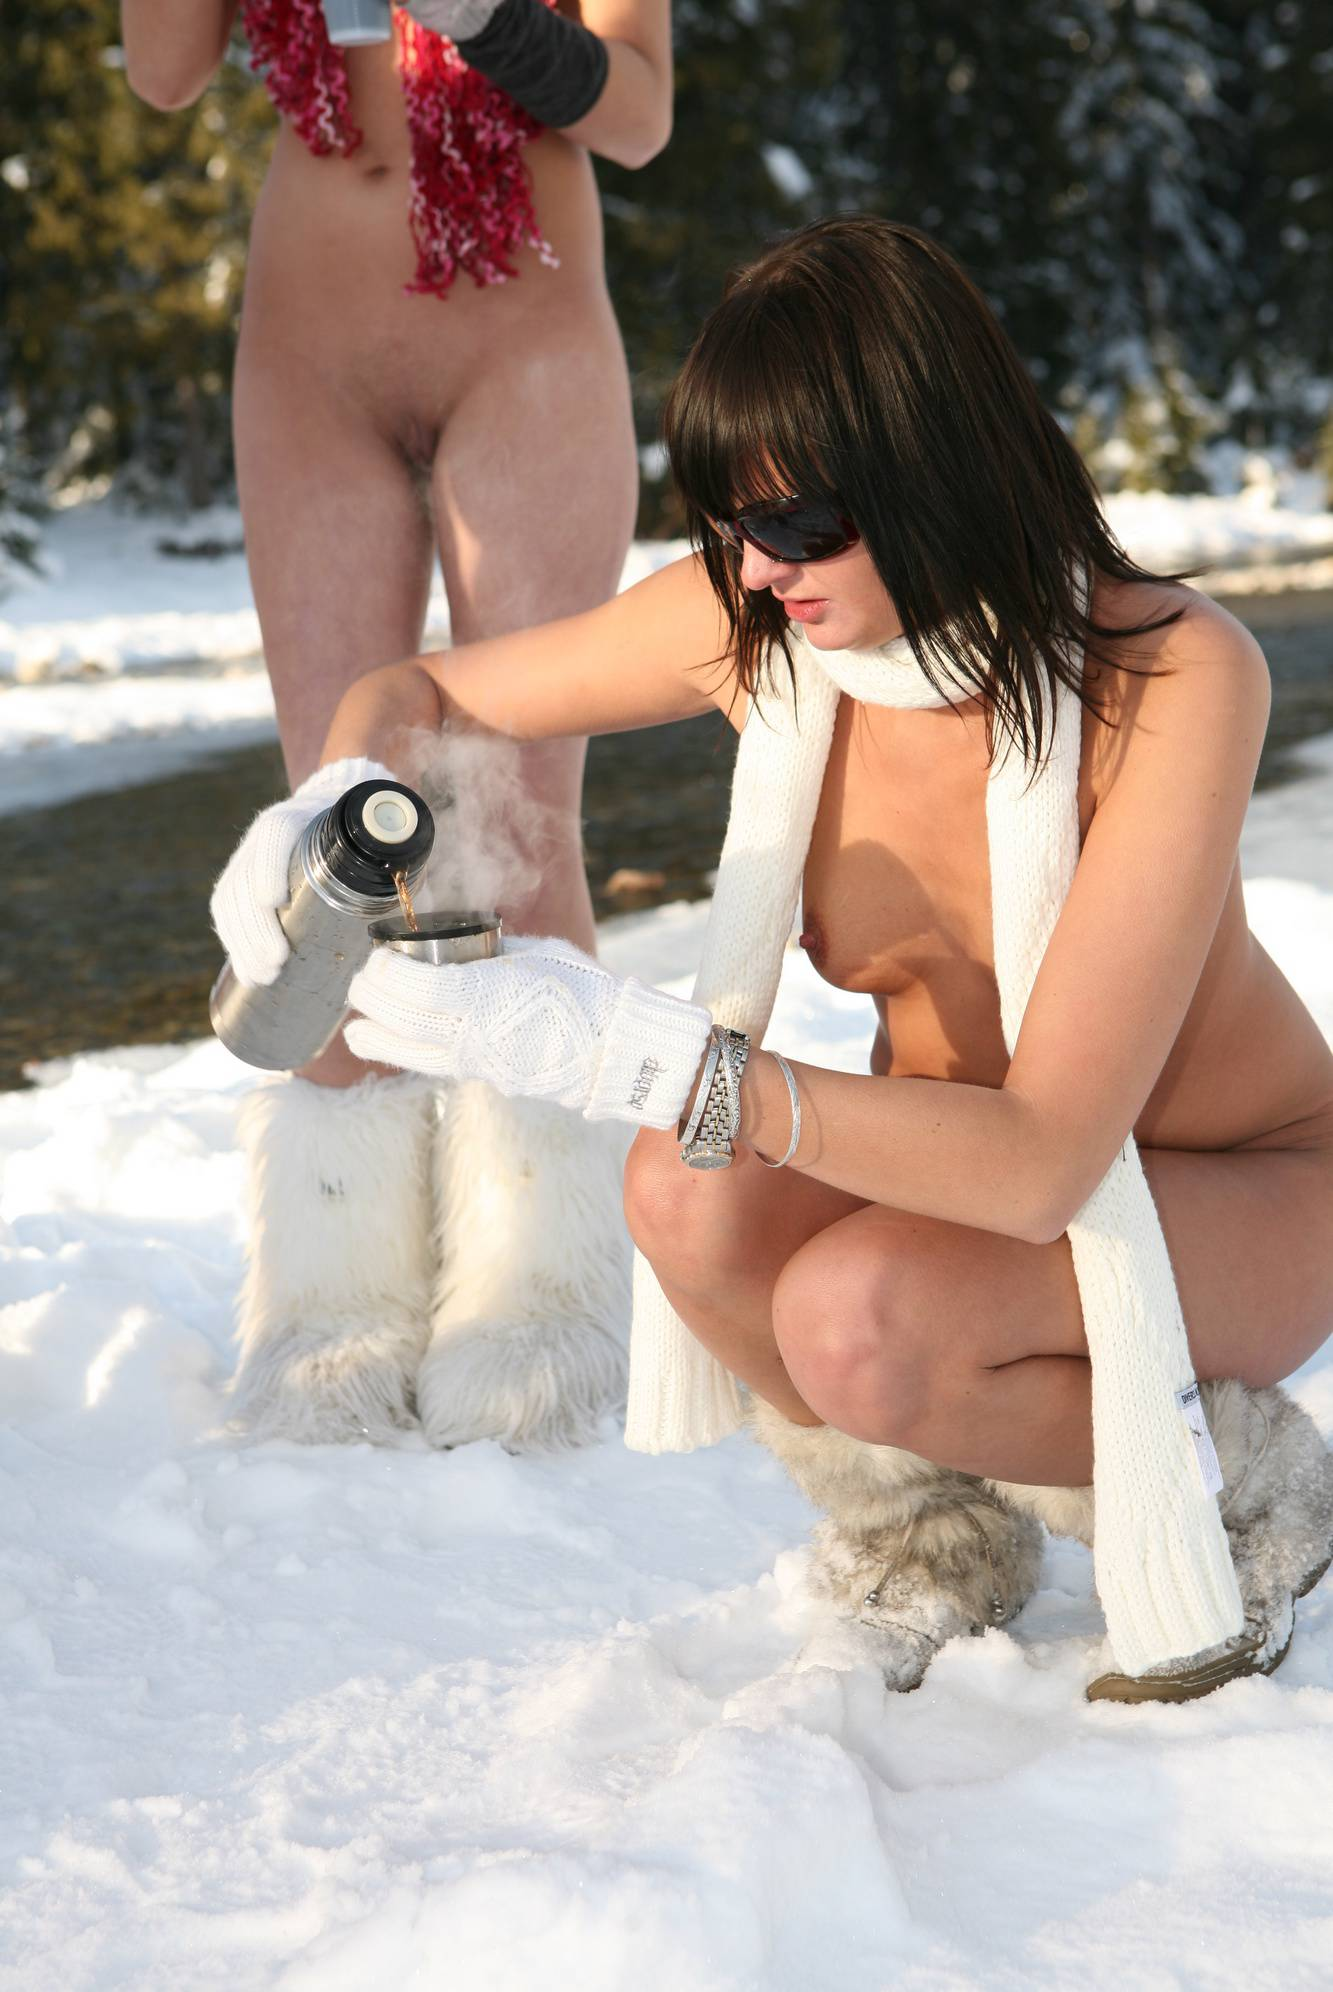 Nudist Gallery Snow Day Fire Drinks - 1